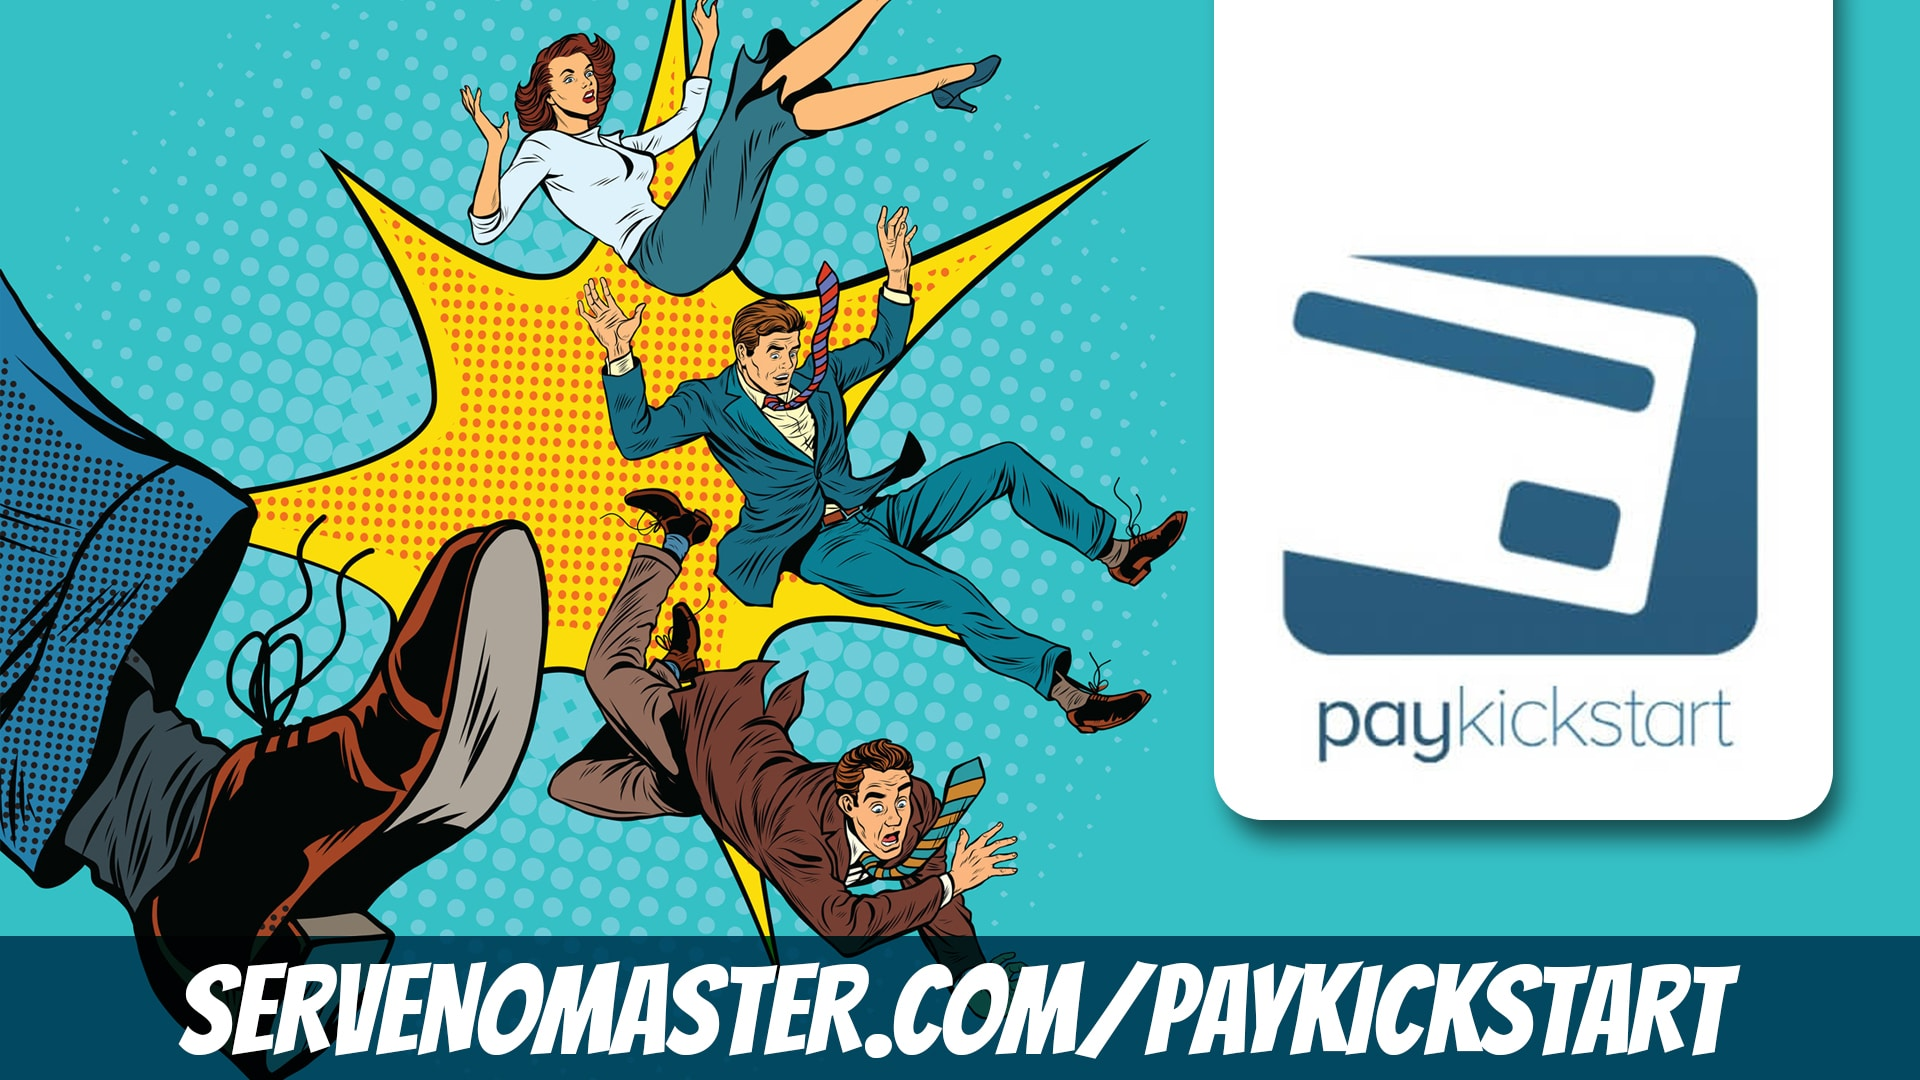 paykickstart checkout cart illustration